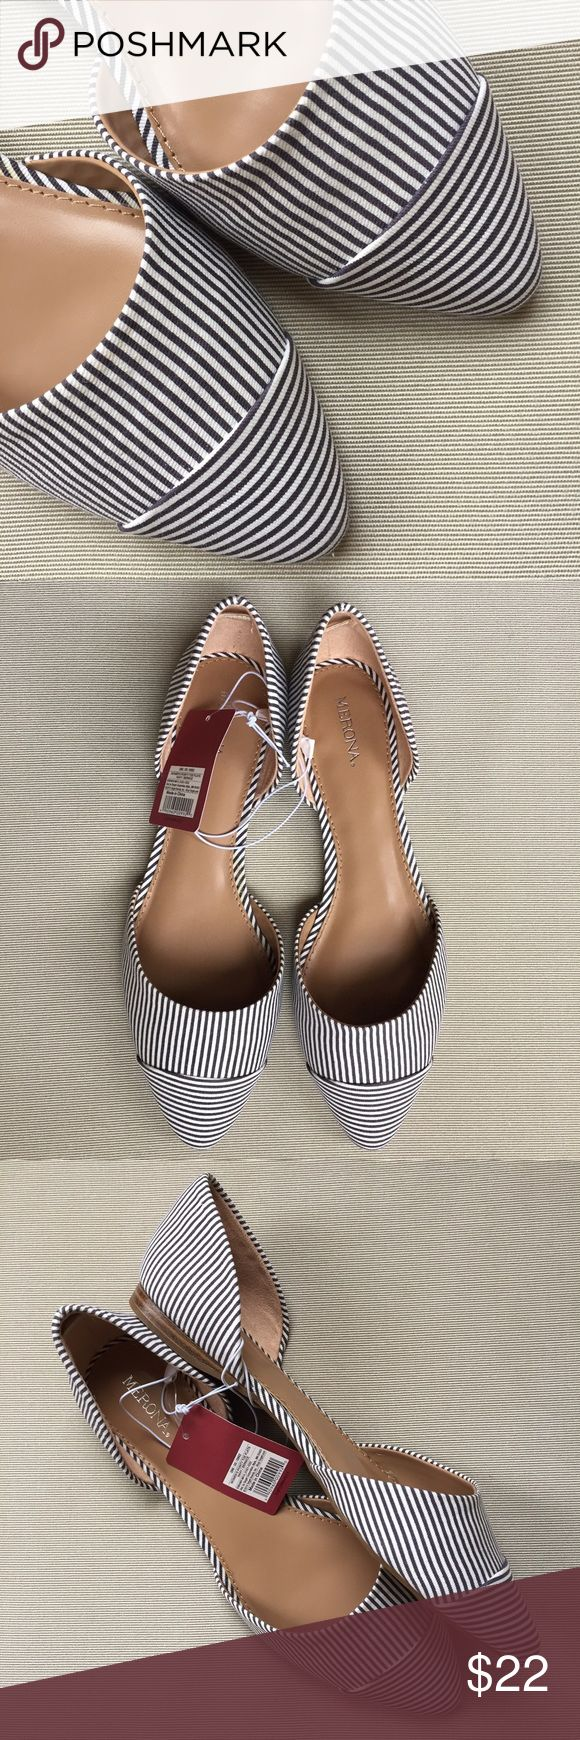 merona • stripe d'osray pointed toe flats NWT • new in box • nautical stripe • navy and white • slip-on d'orsay ballet flat • pointed toe • no trades Merona Shoes Flats & Loafers